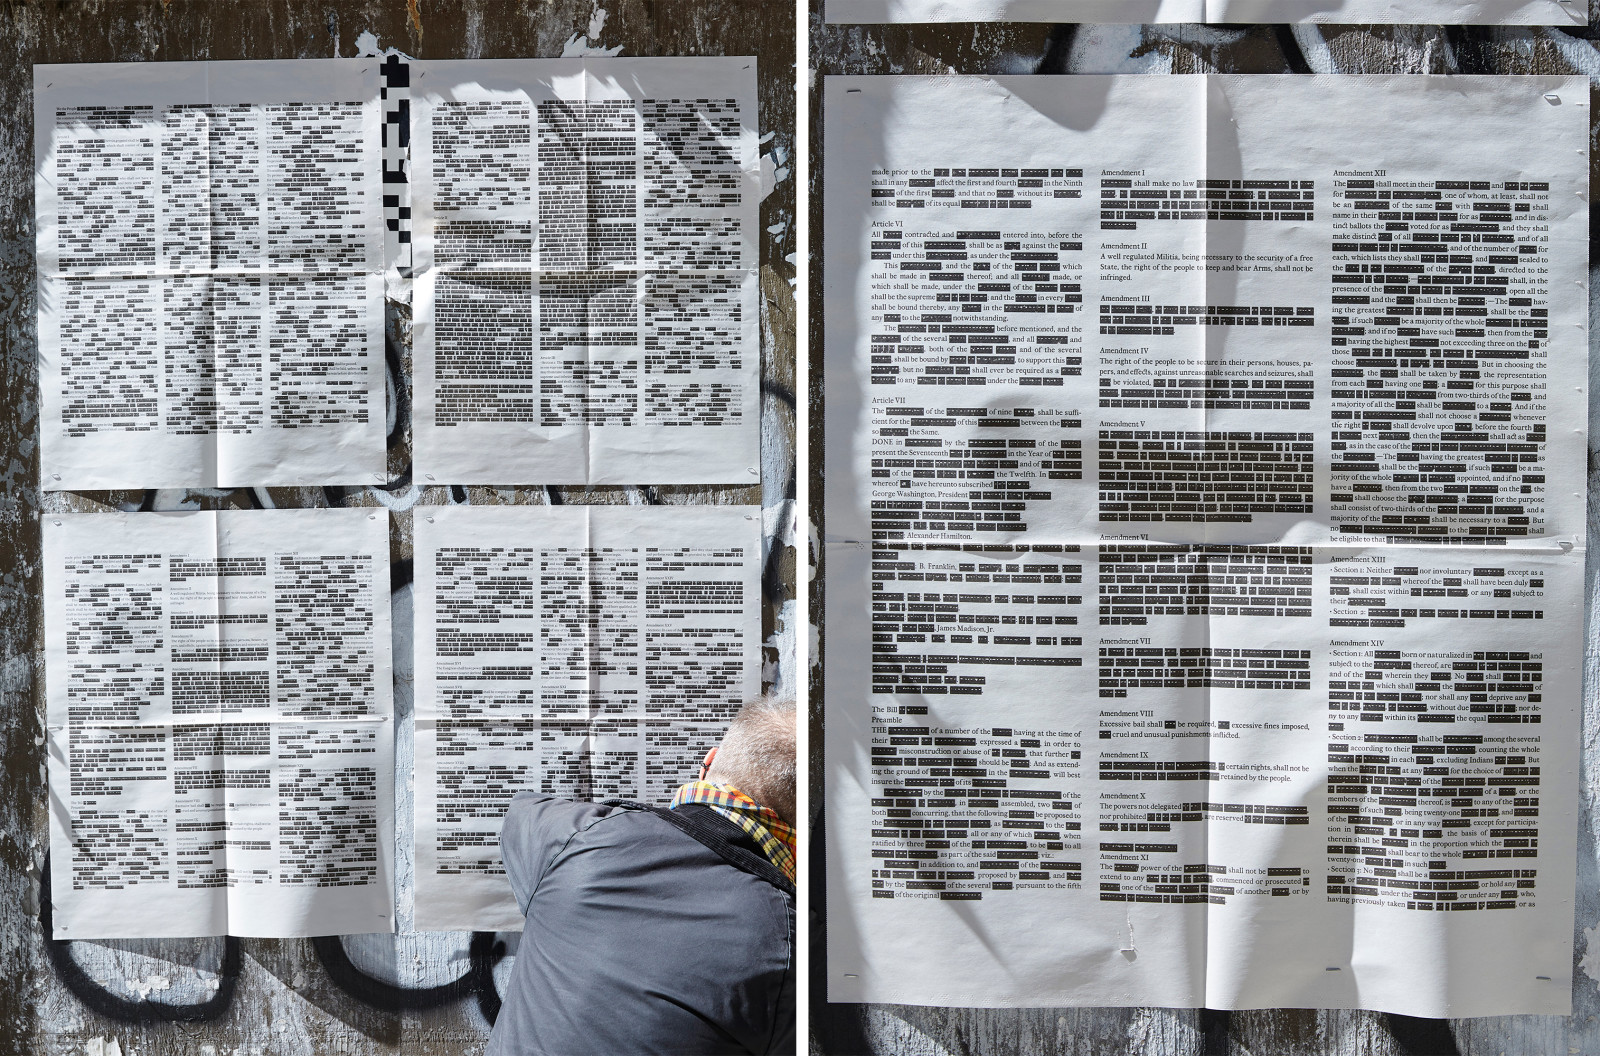 Russell Maret, United States Constitution and Amendments, Redacted, 2021